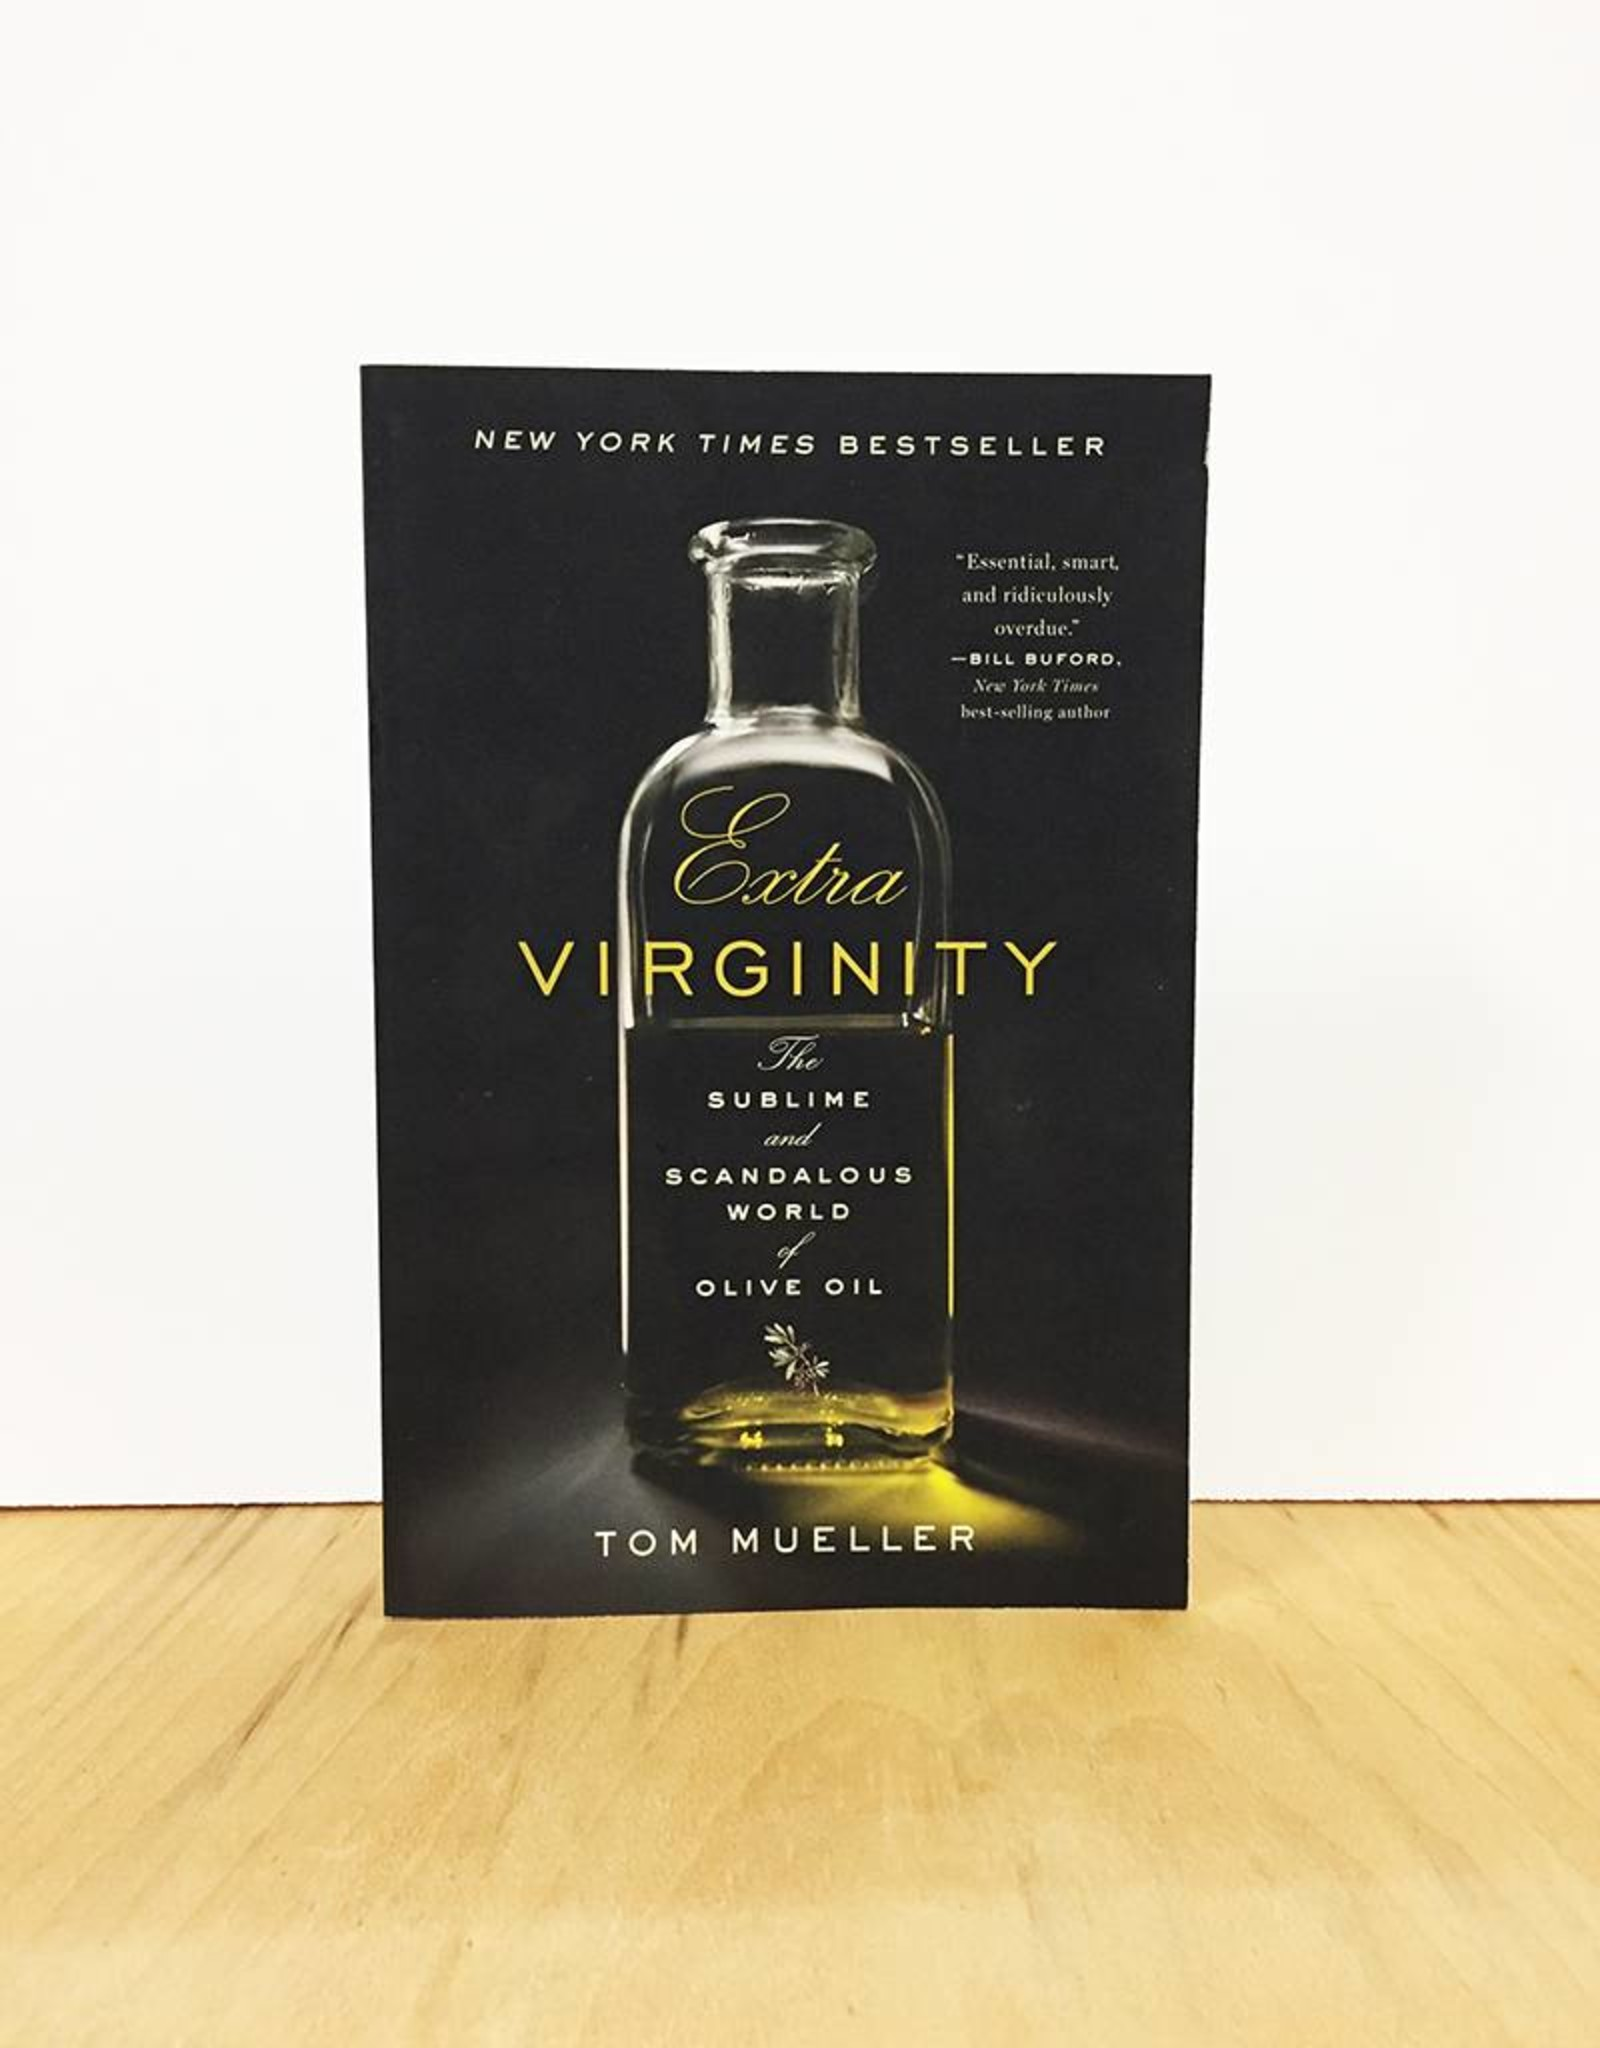 W. W. Norton Extra Virginity by Tom Mueller